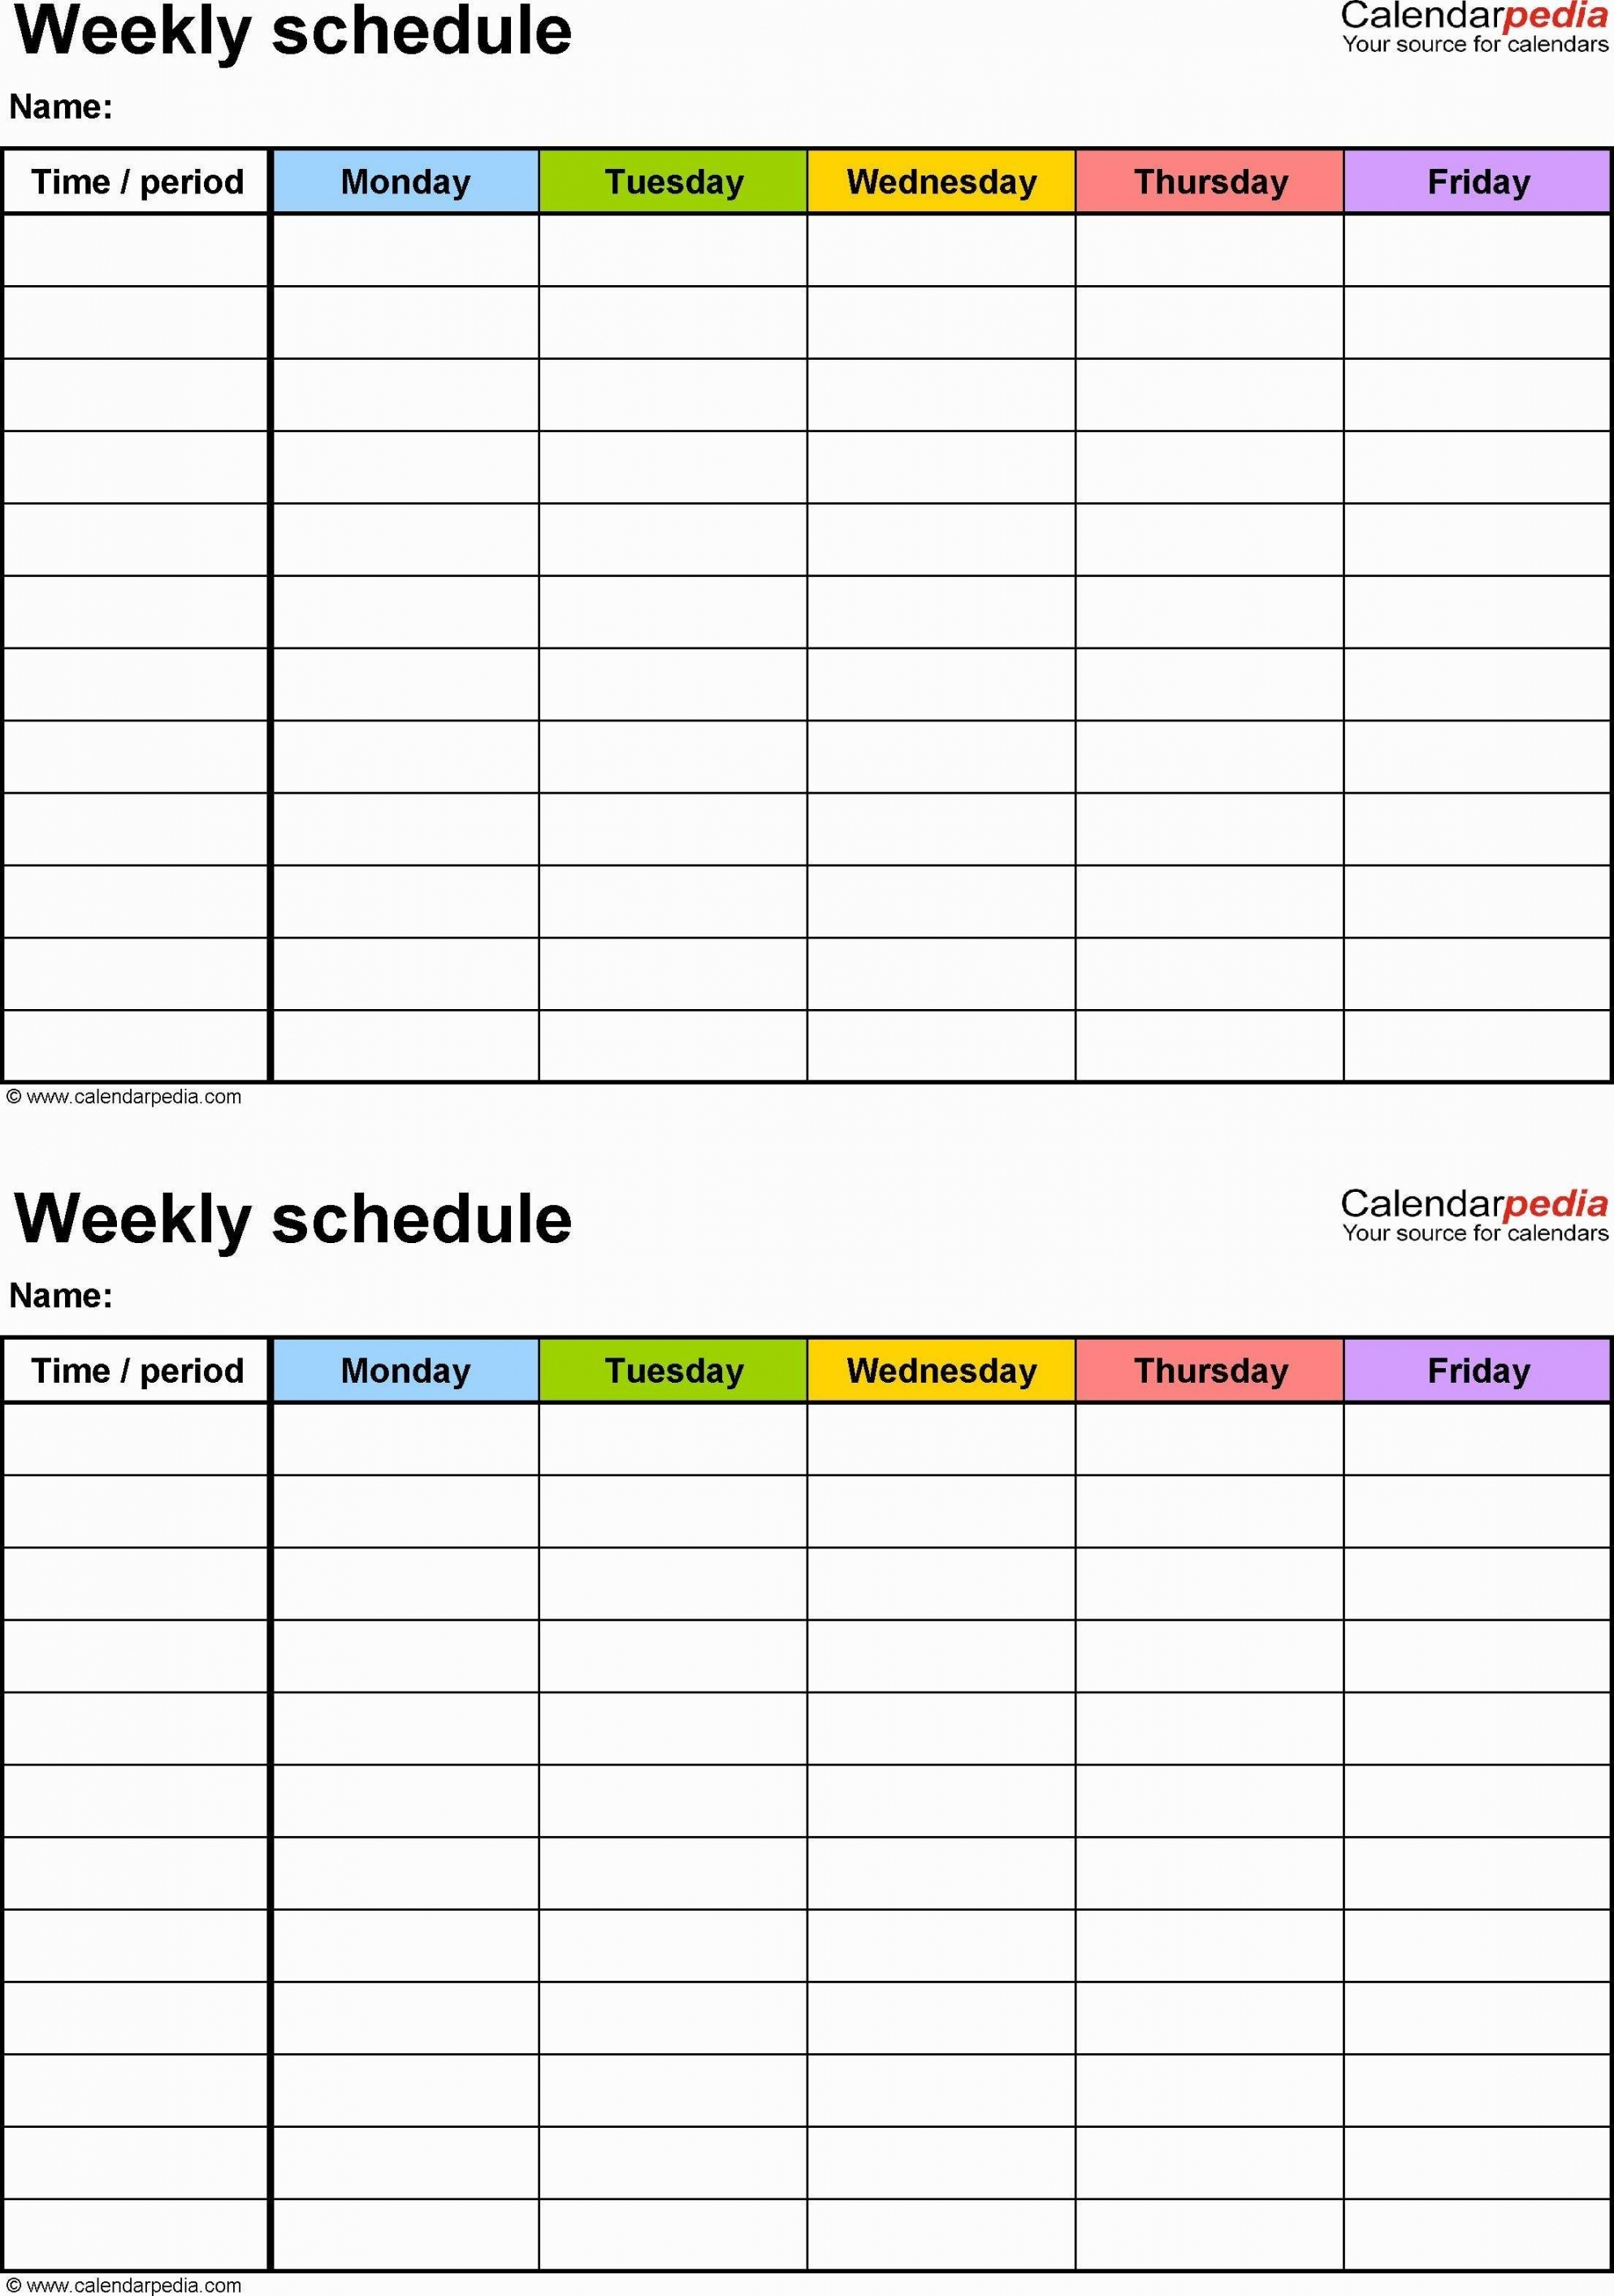 12 Hour Nursing Shift Schedule Template with regard to 12 Hour Shift Schedule Template